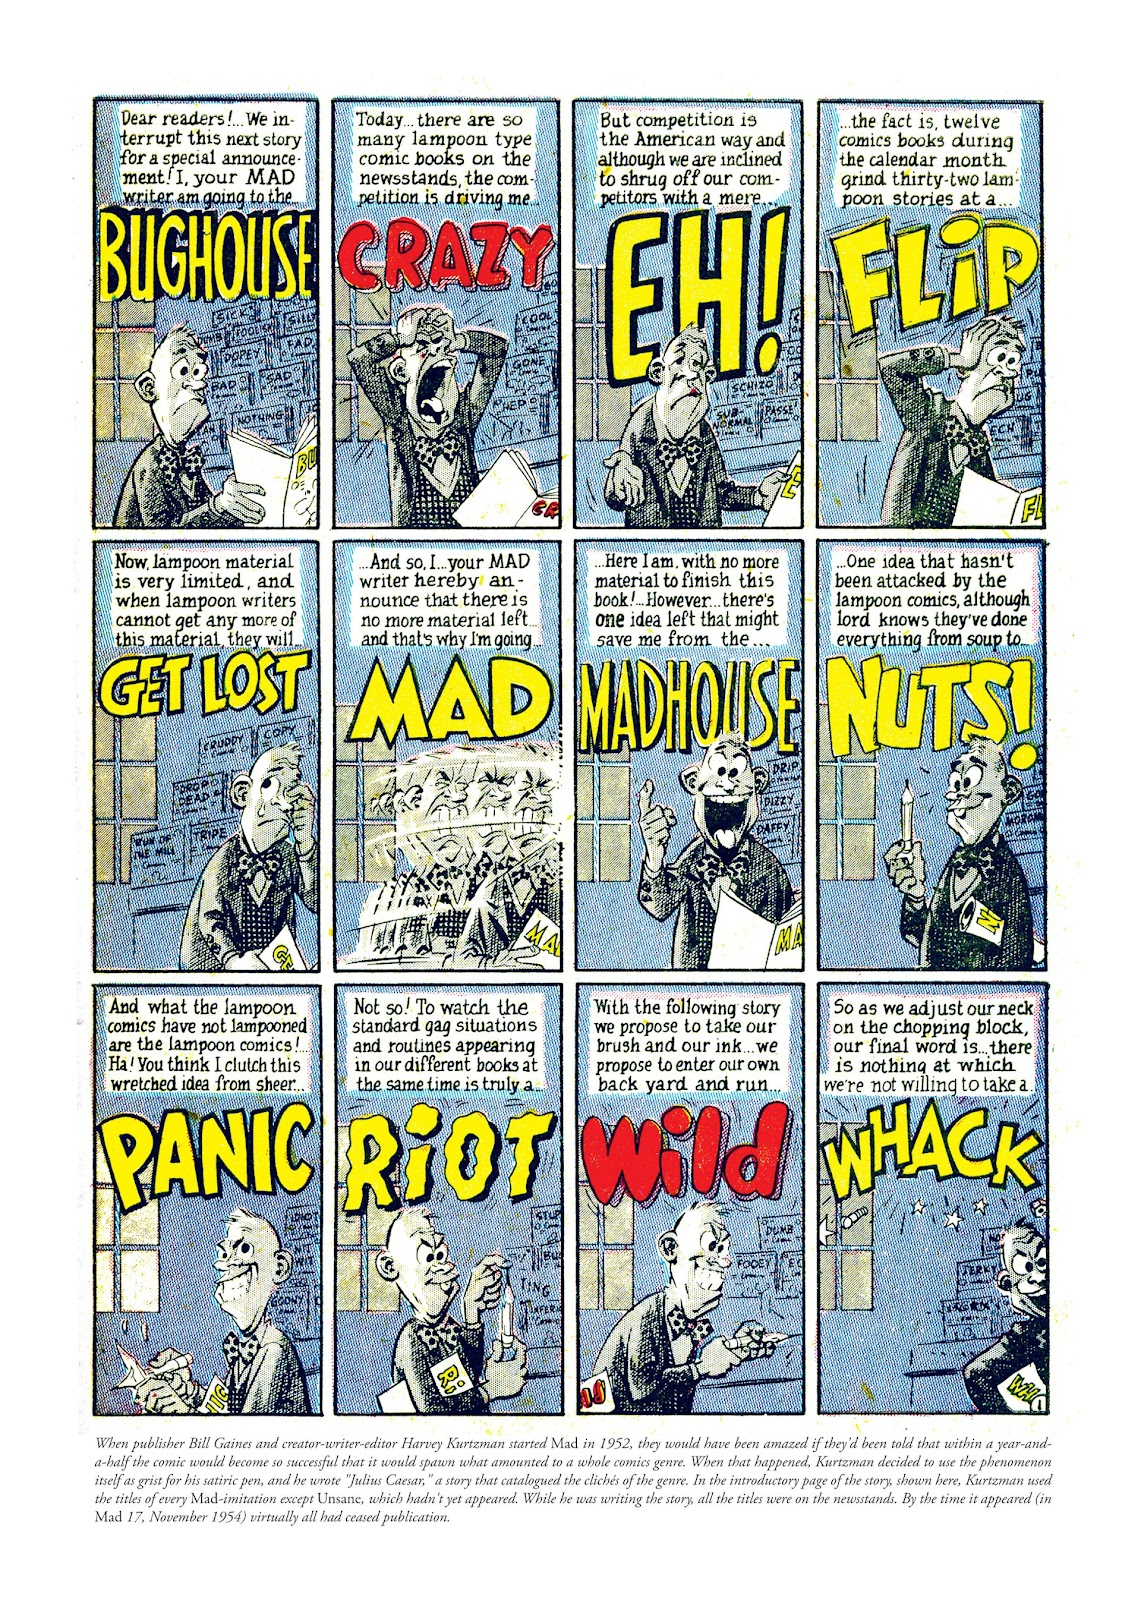 Read online Sincerest Form of Parody: The Best 1950s MAD-Inspired Satirical Comics comic -  Issue # TPB (Part 1) - 3